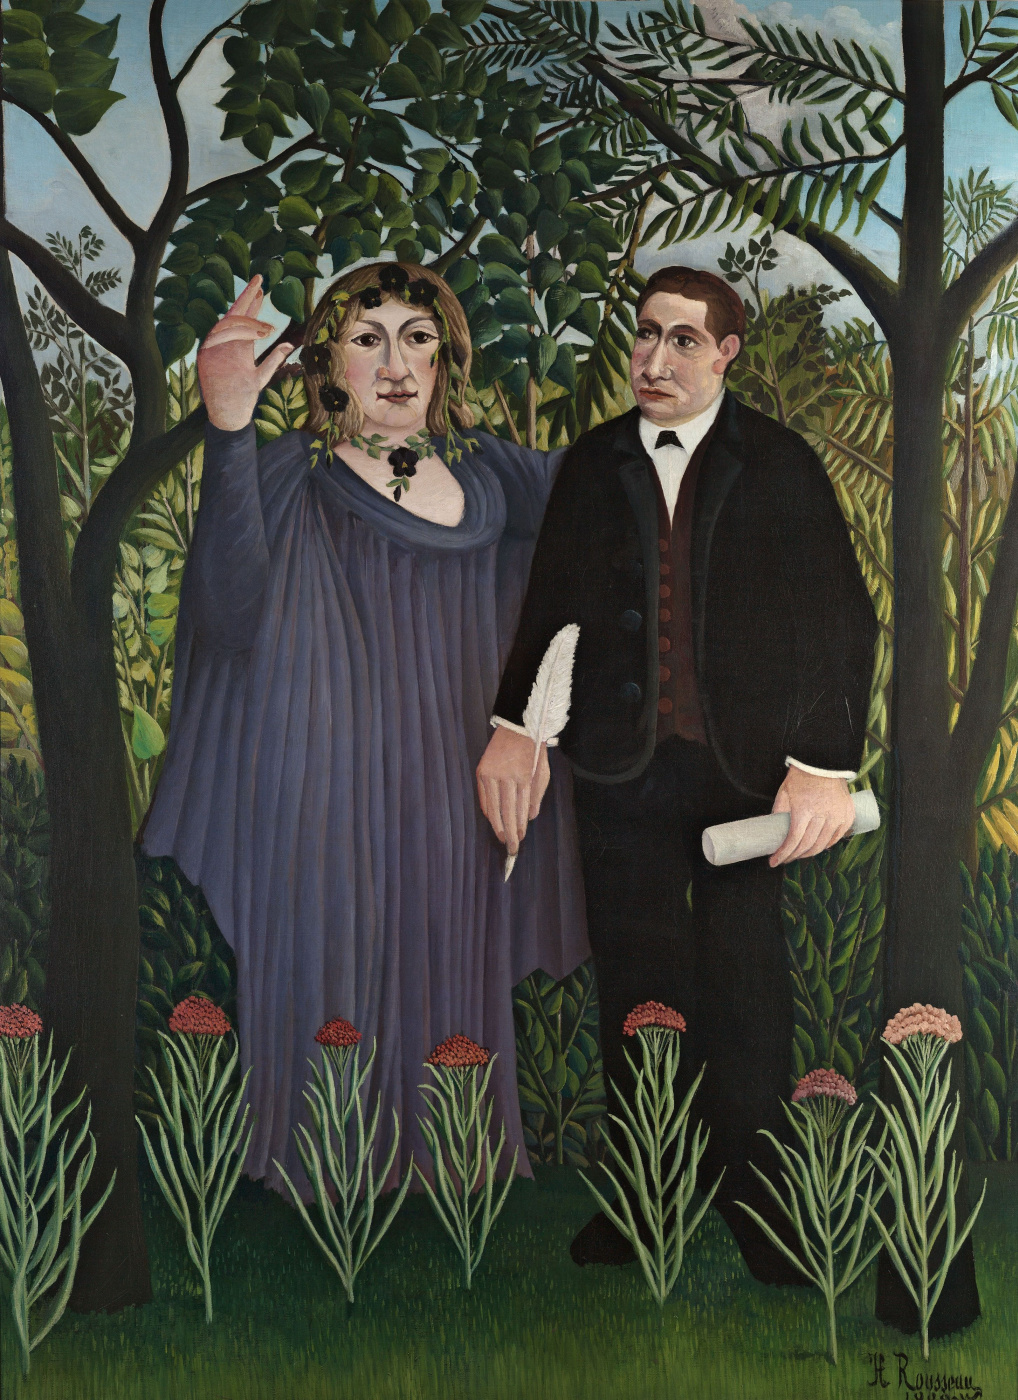 Henri Rousseau. The Poet and His Muse (The Muse Inspiring the Poet). Portraits of poet Guillaume Apollinaire and painter Marie Laurencin